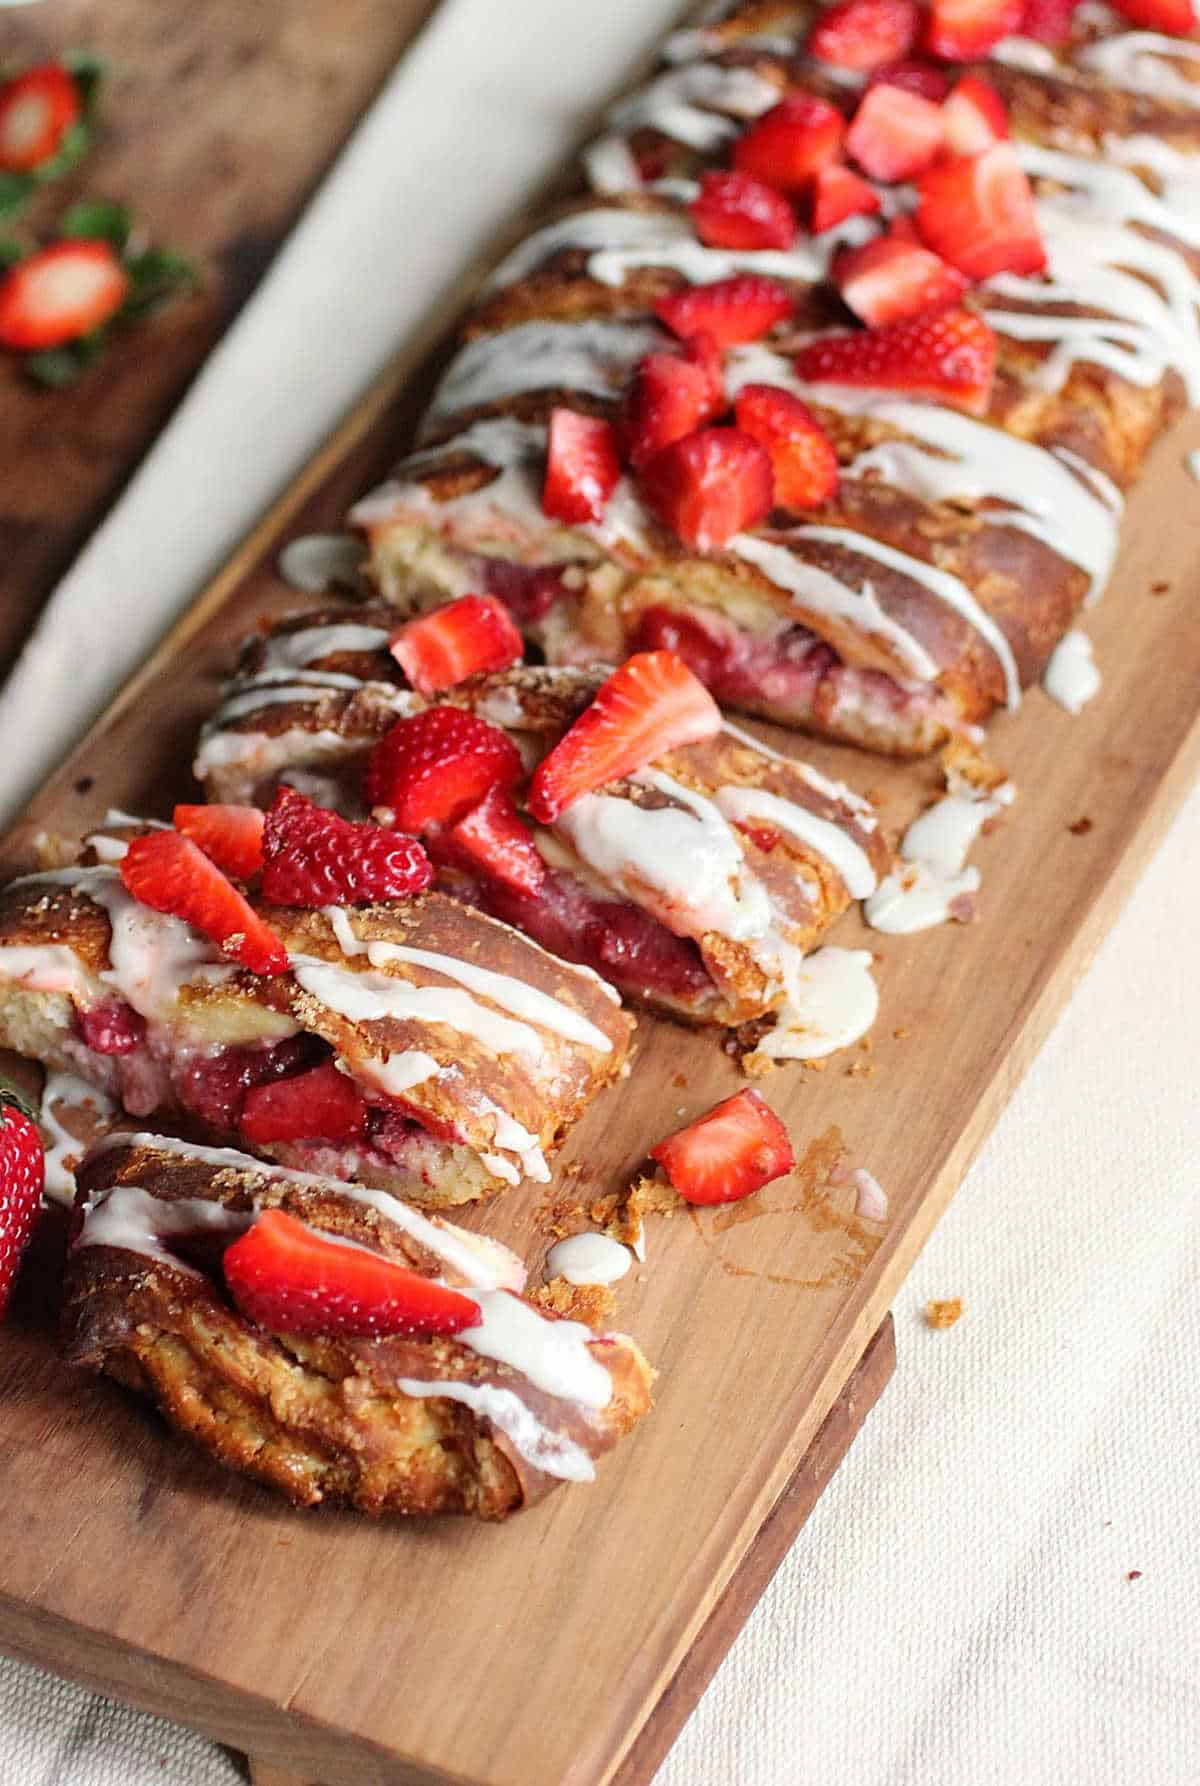 Top view of long strawberry topped danish on wooden board